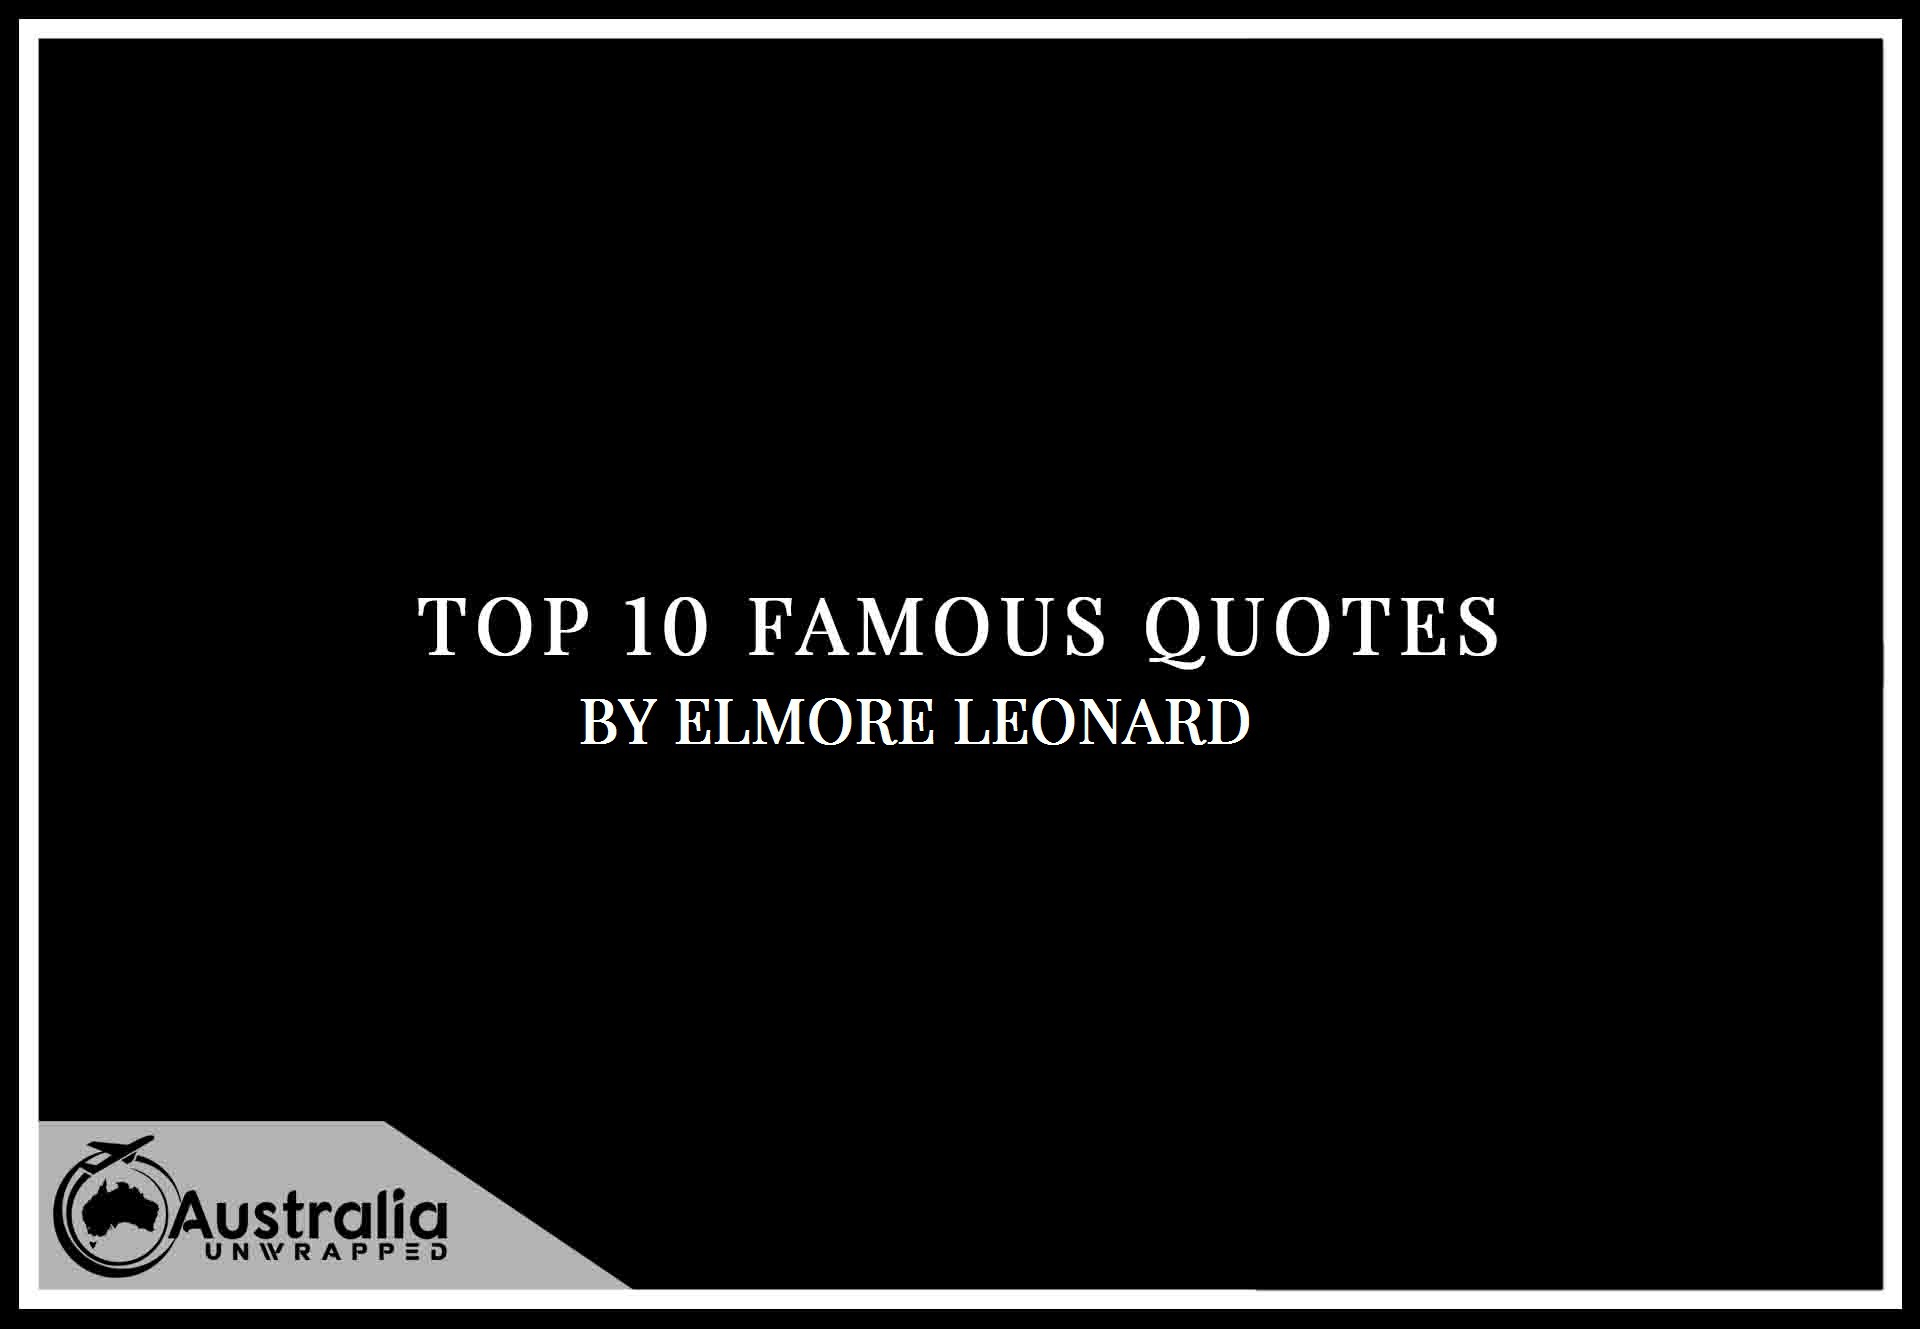 Elmore Leonard's Top 10 Popular and Famous Quotes